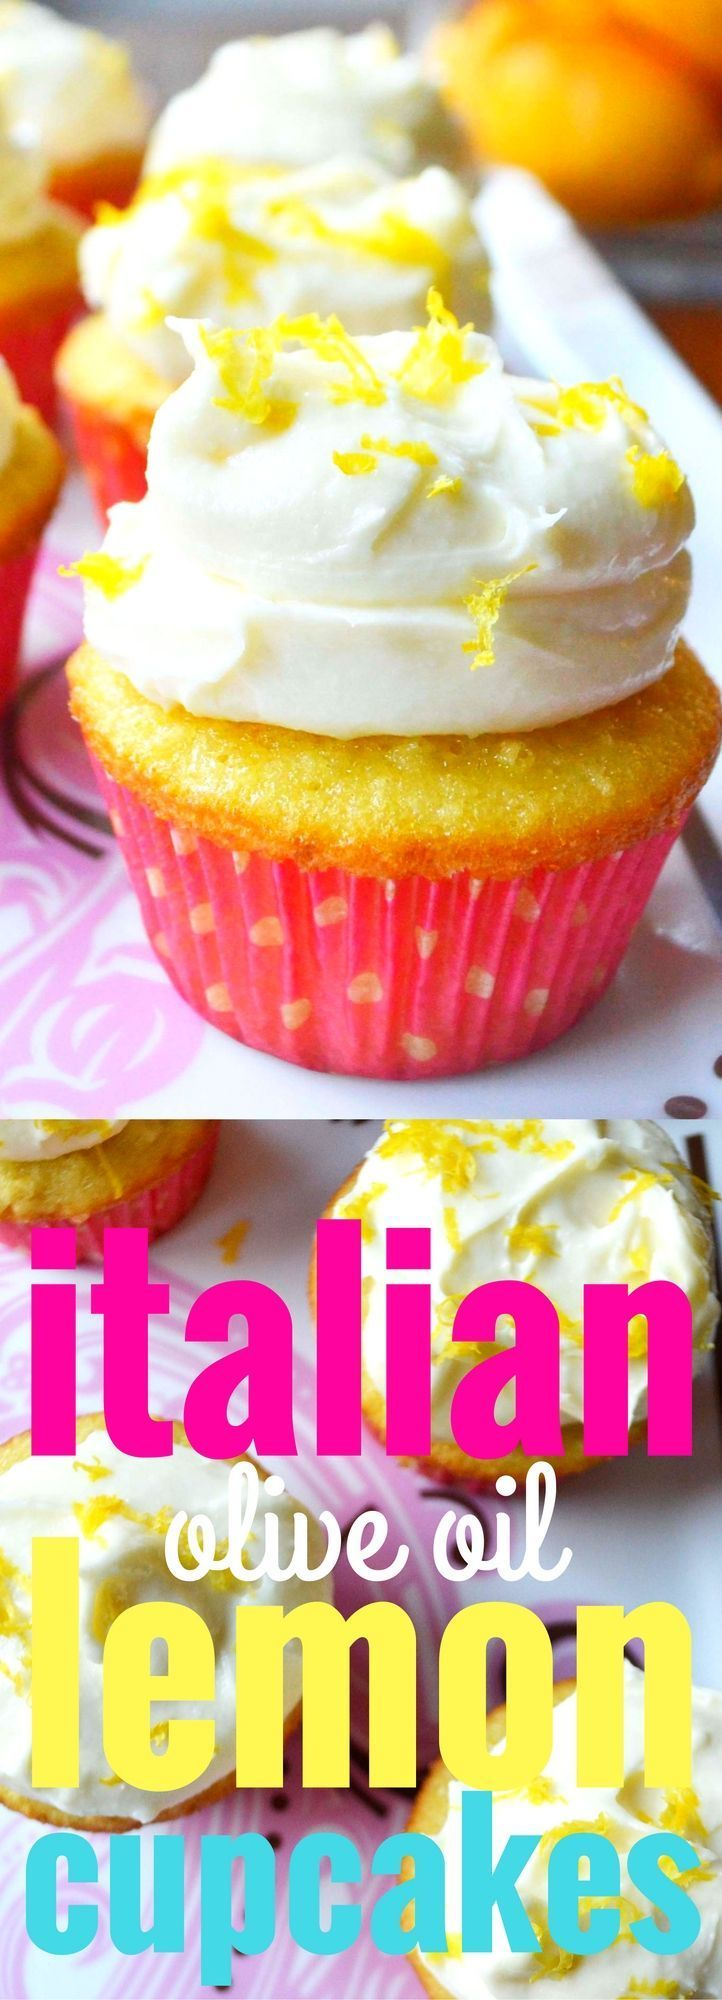 Italian Lemon Olive Oil Cupcakes with Sweet Cream Cheese and Ricotta Frosting. Fresh lemon zest, lemon juice, and olive oil makes this cupcakes extra moist and flavorful. The frosting is out of this world! http://www.modernhoney.com